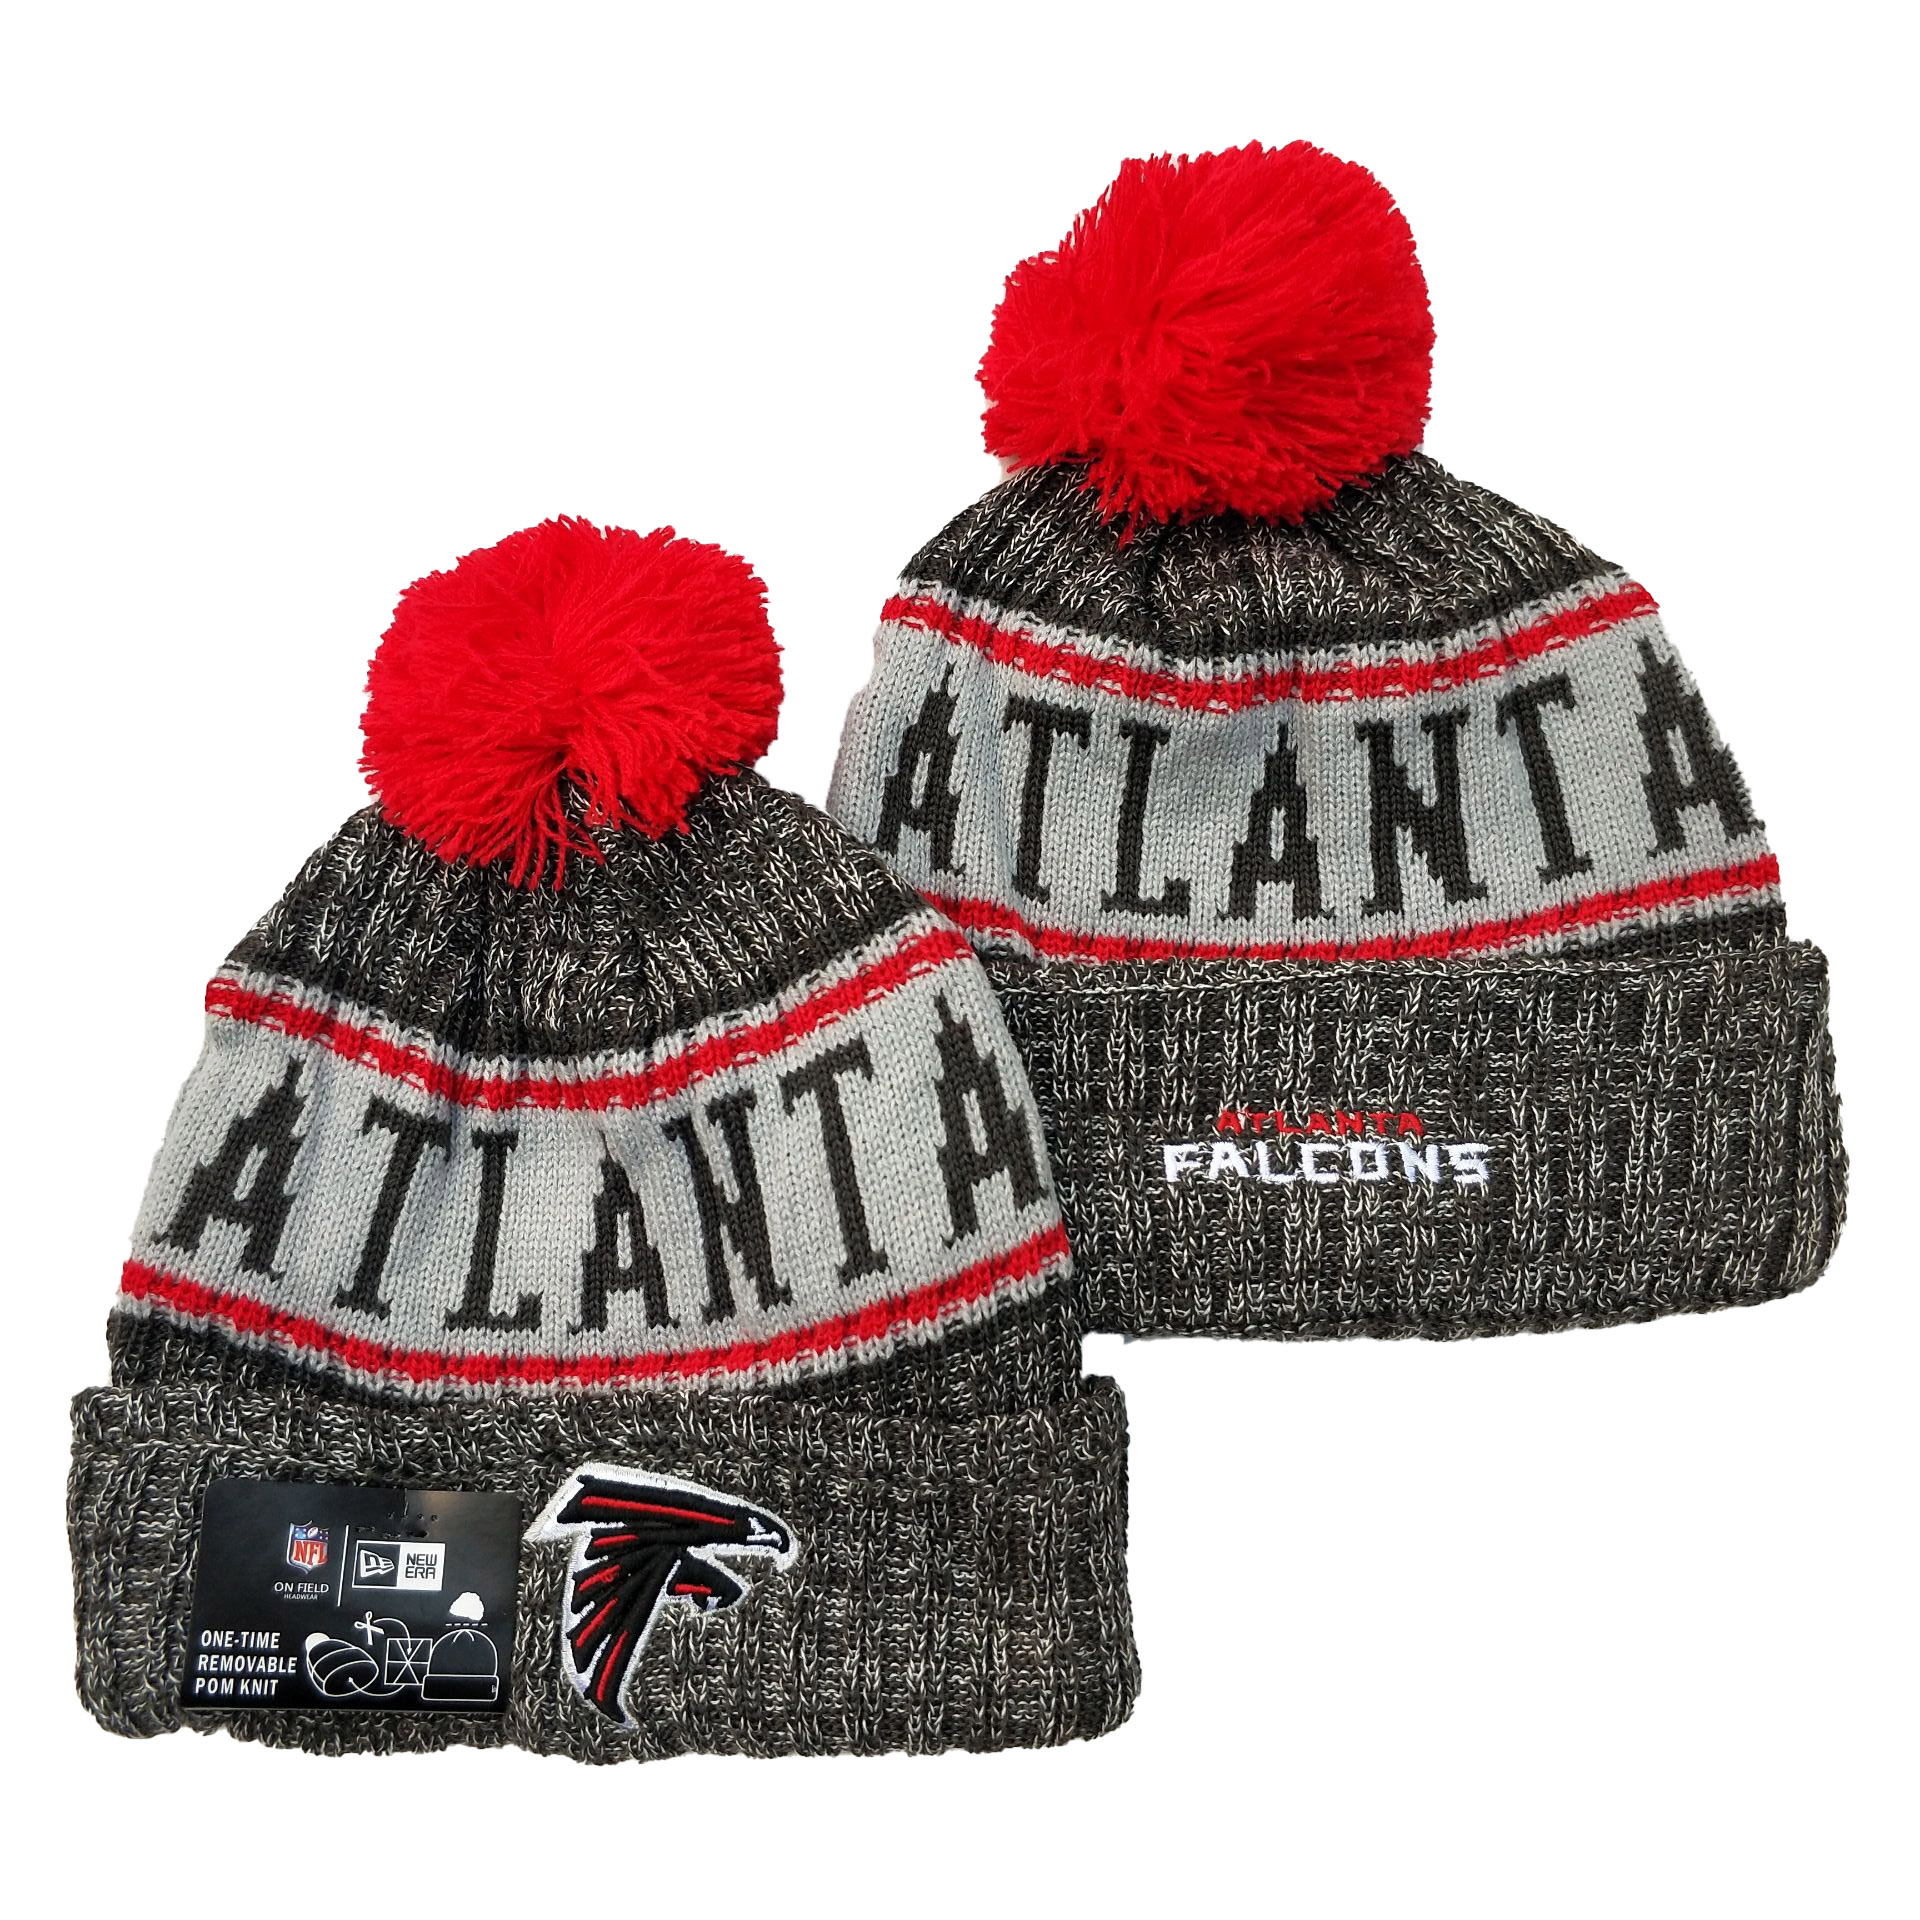 Atlanta Falcons Knit Hats 051